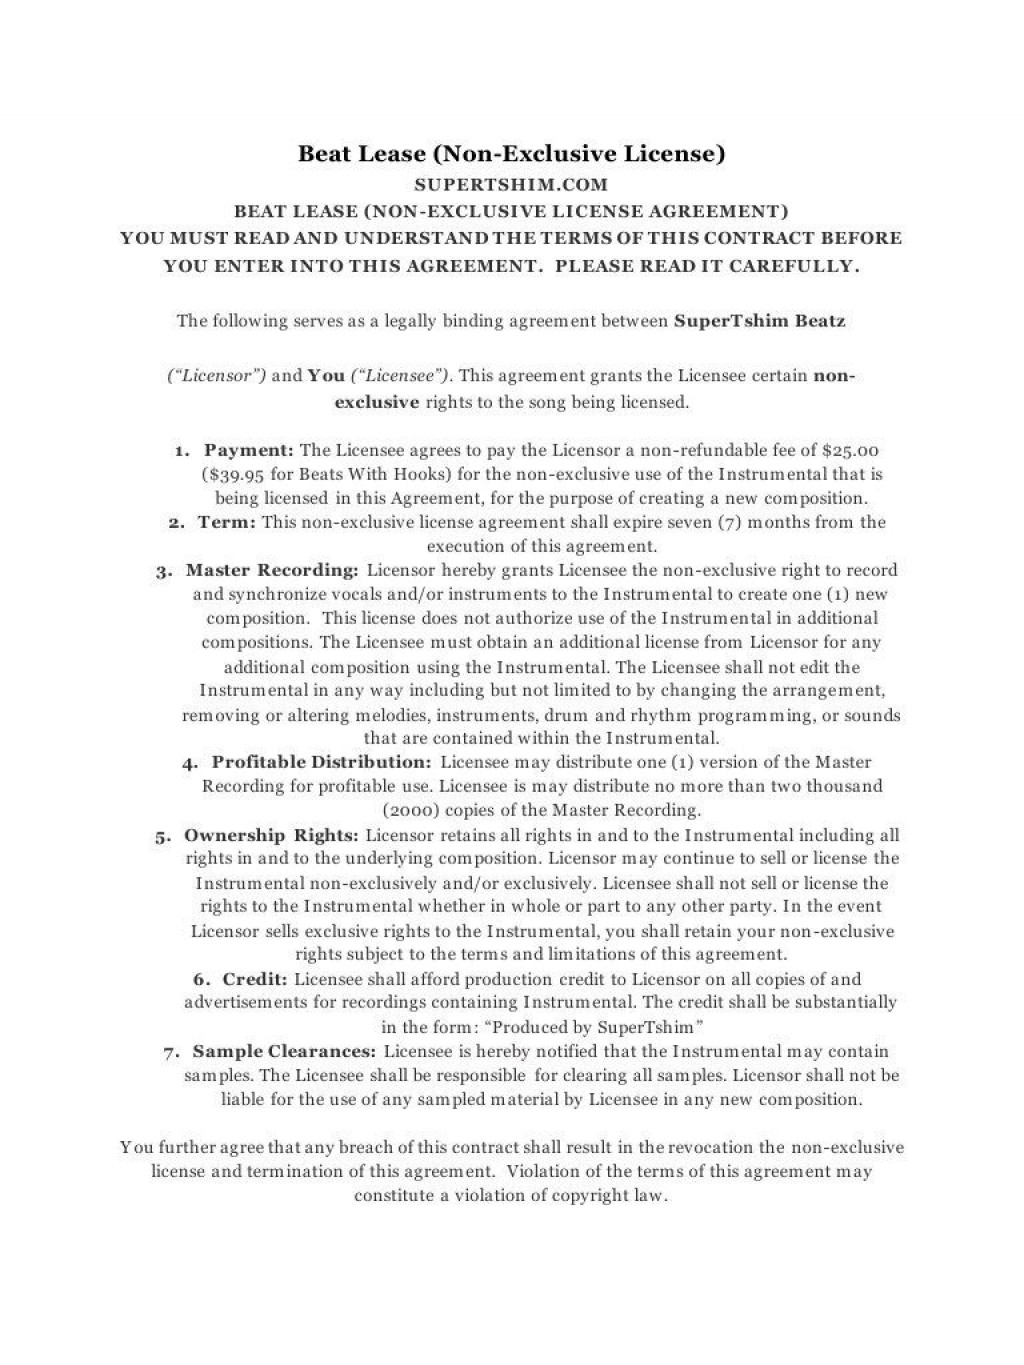 008 Beautiful Beat Lease Contract Template High Definition  Unlimited PdfLarge